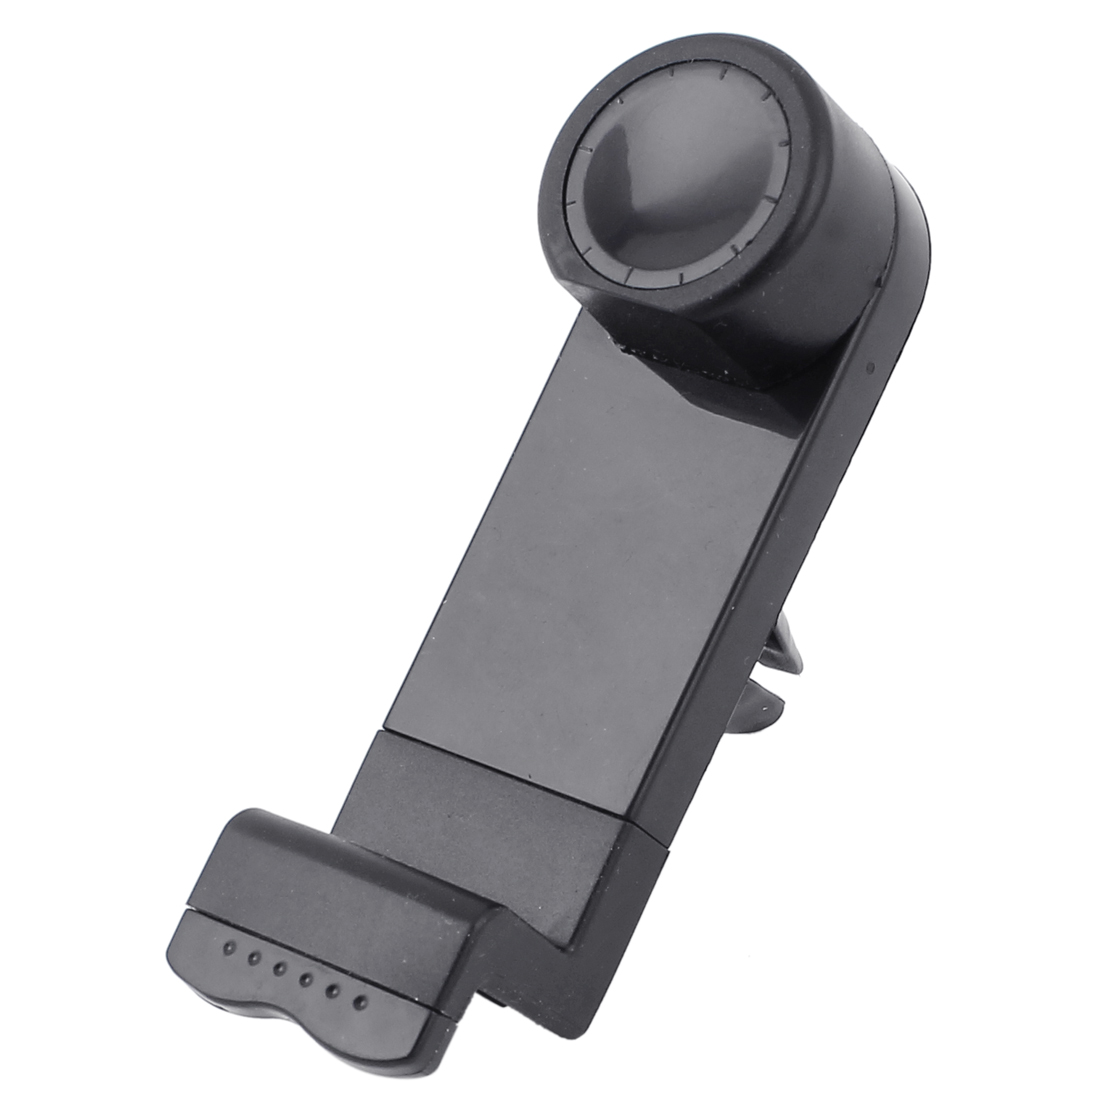 Car Air Vents Claps 360 Degreen Swivel Mobile Phone Adjustable Stand Holder Black